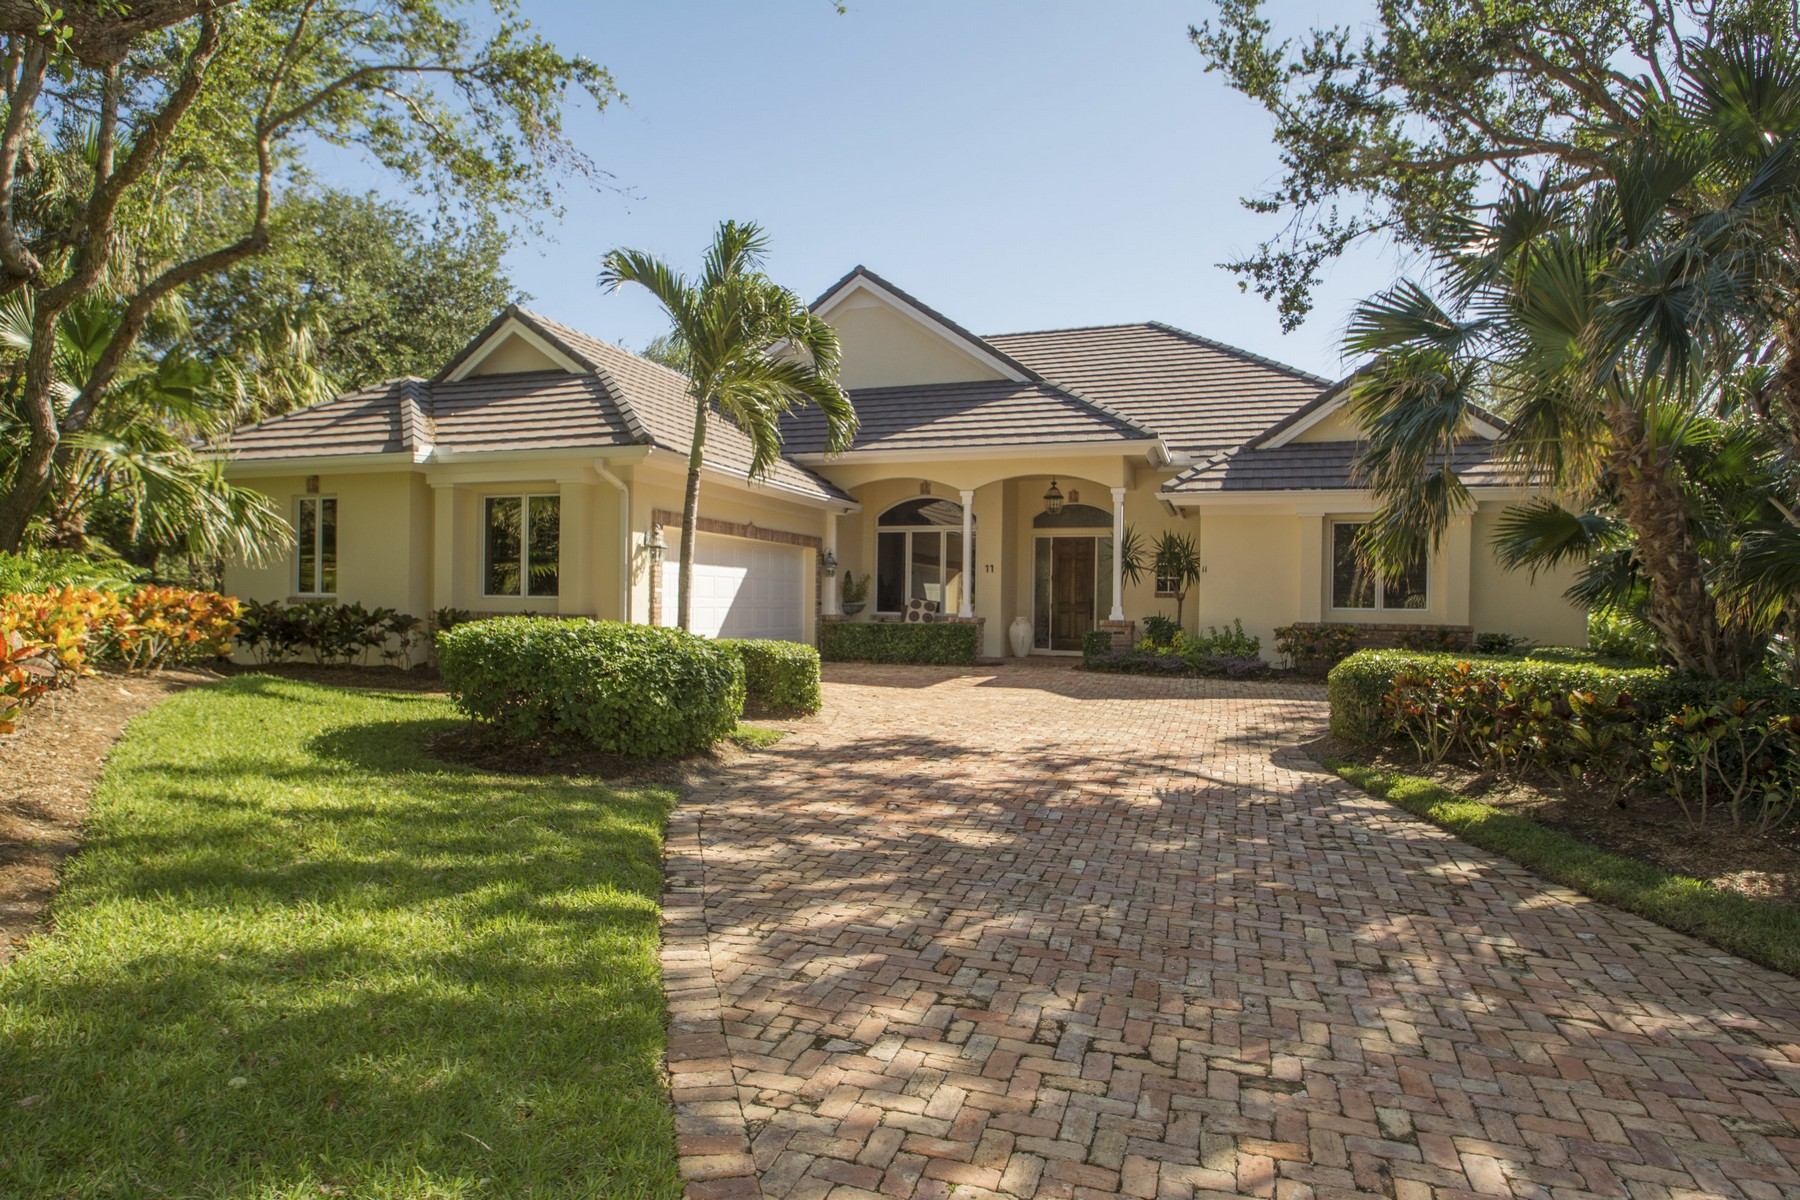 Maison unifamiliale pour l Vente à Magnificent Home with Exquisite Landscaping 11 S. White Jewel Court Indian River Shores, Florida 32963 États-Unis